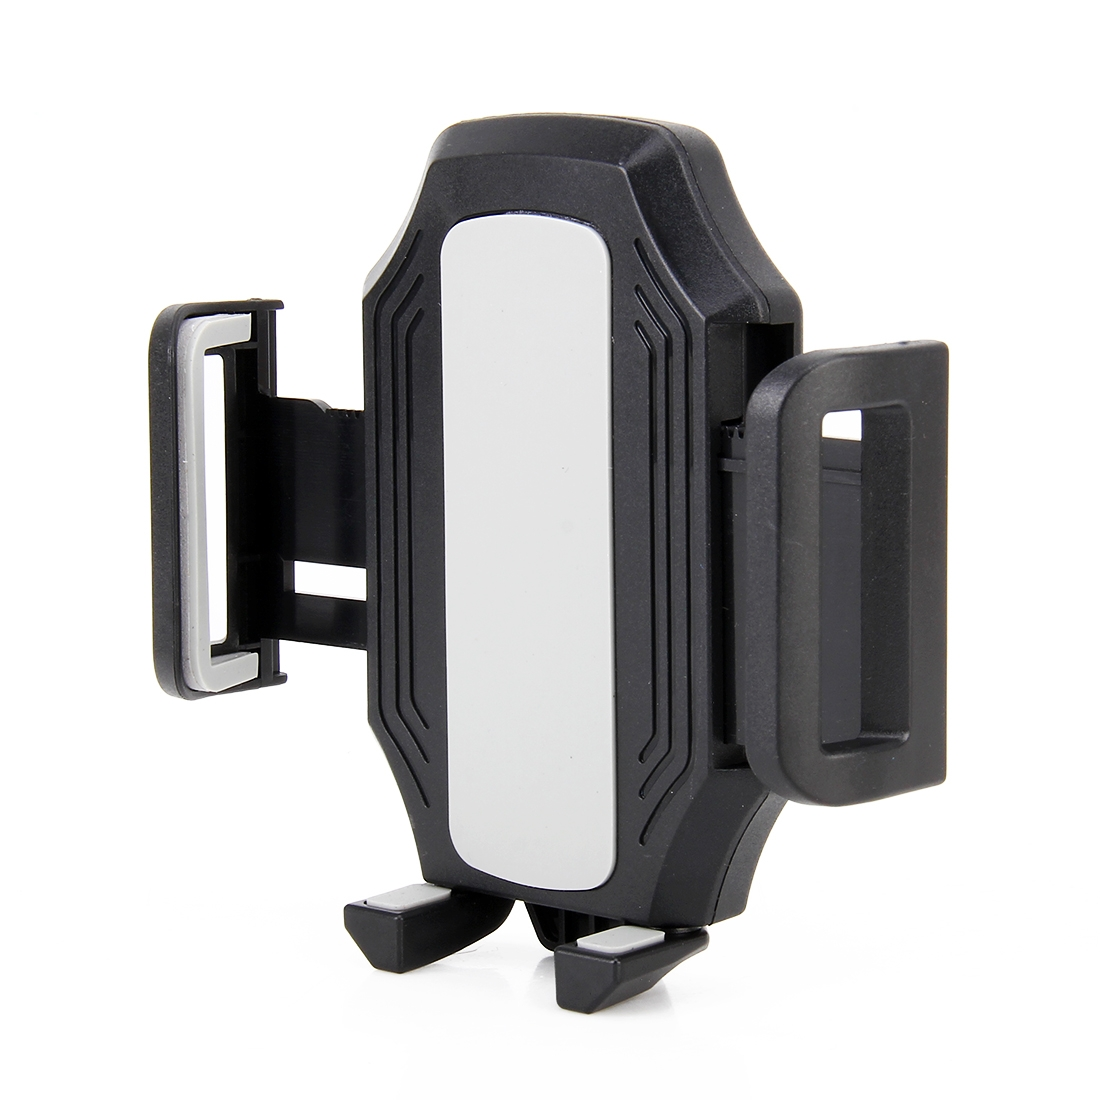 360 Degree Phone Rotary Suction Cup Holder Stand Mount, Clip Width: 5-10cm, For iPhone, Samsung, LG, Nokia, HTC, Huawei, and other Smartphones (Random Color)